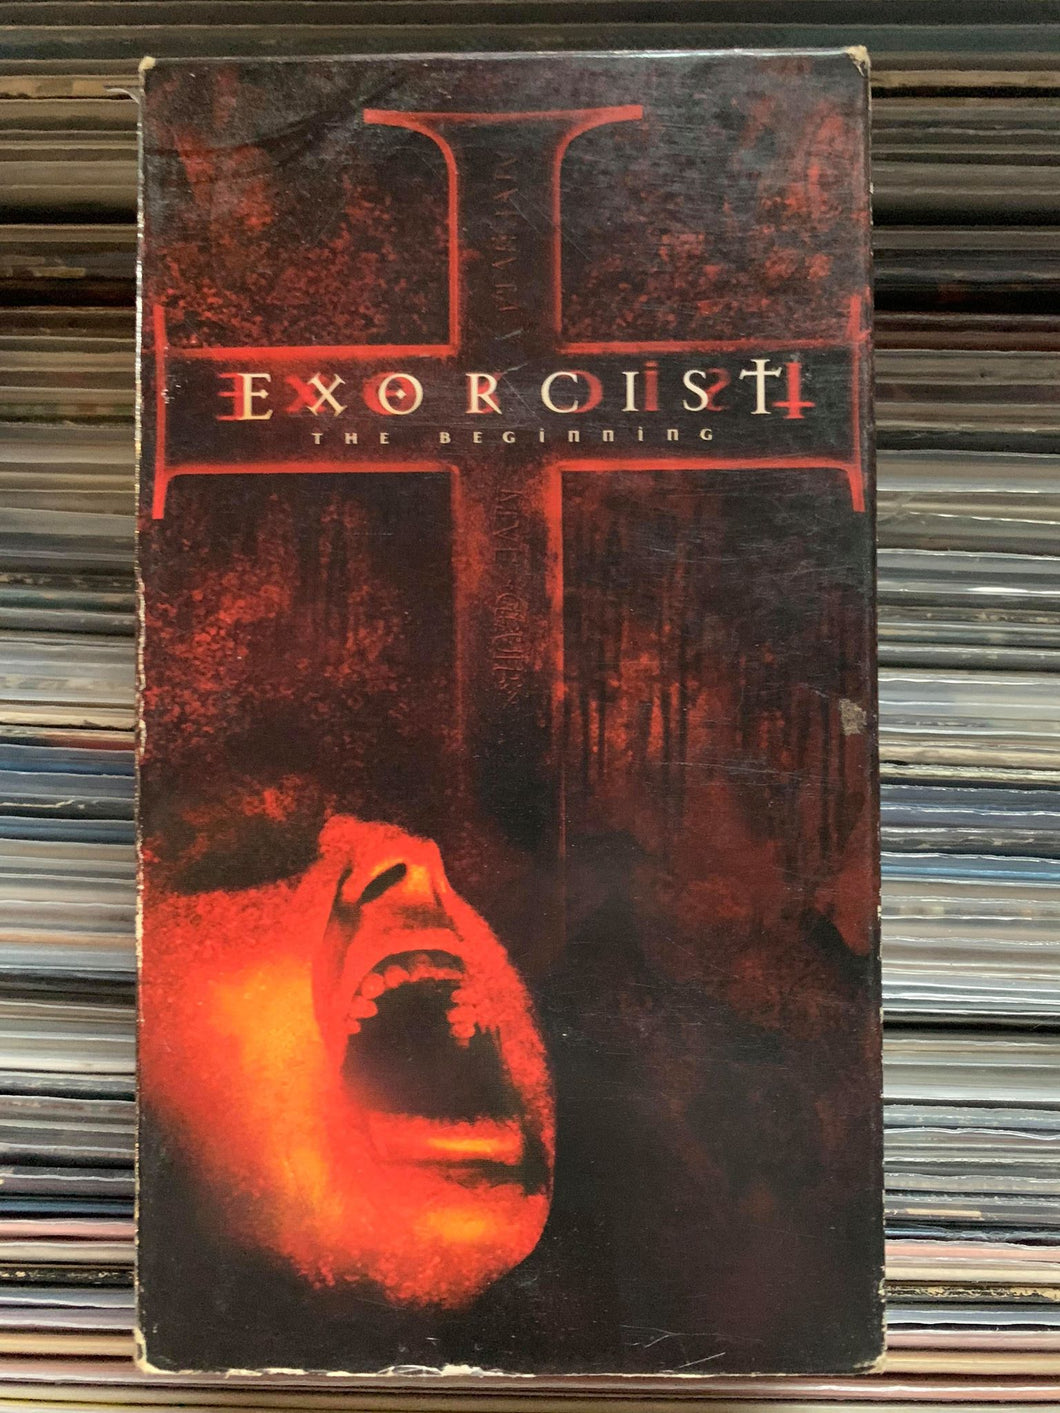 The Exorcist - The Beginning VHS